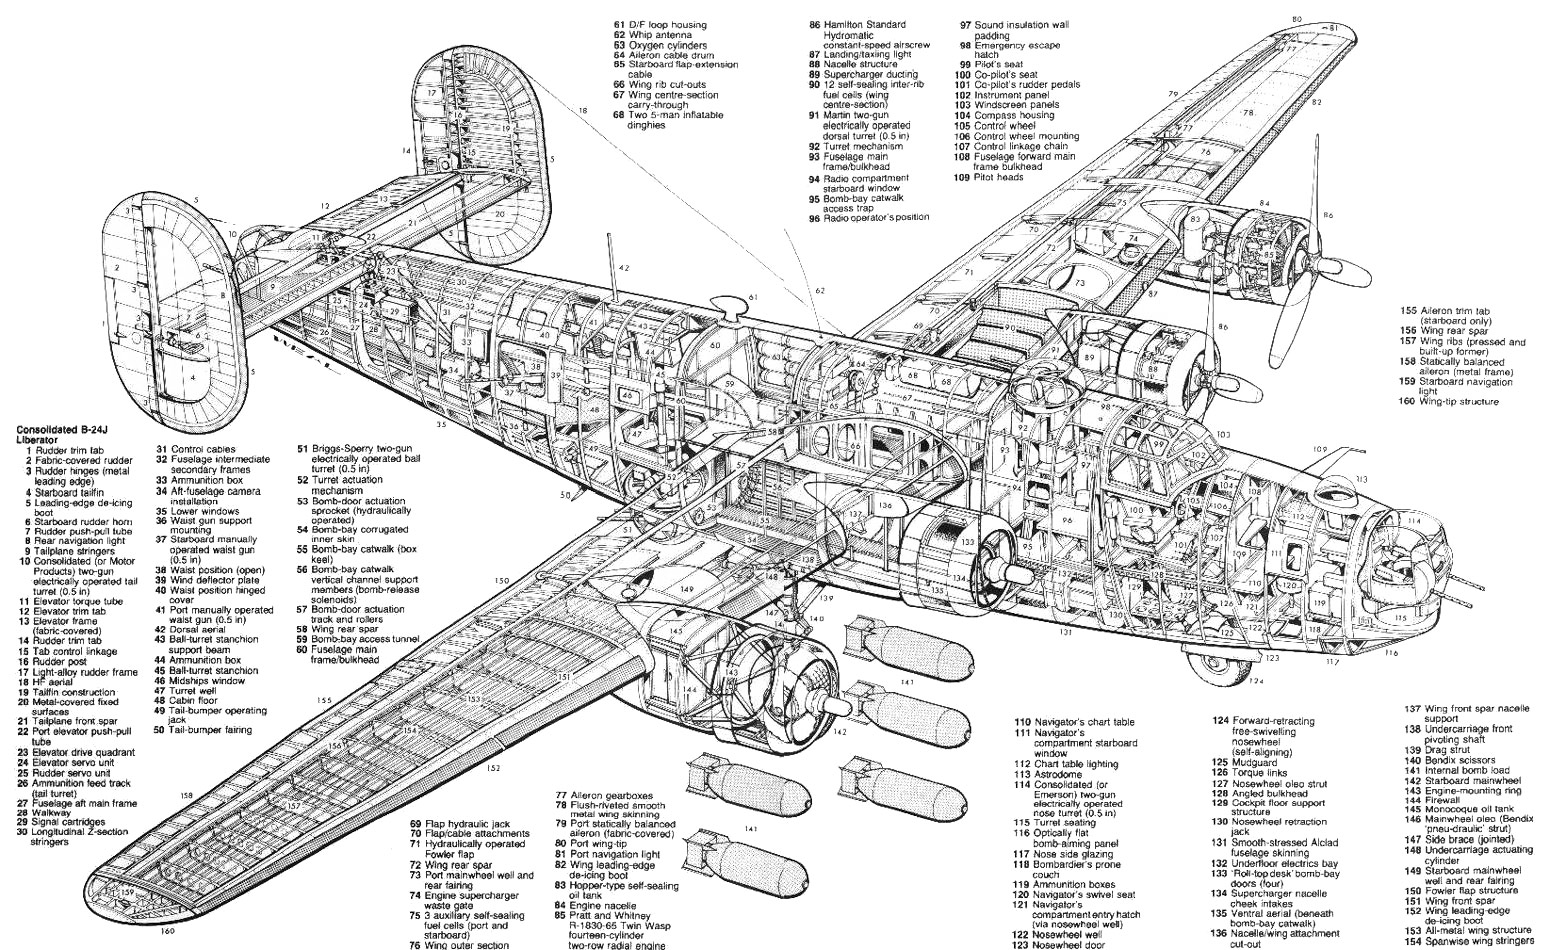 Consolidated B 24 Liberator Pb4y Privateer Download